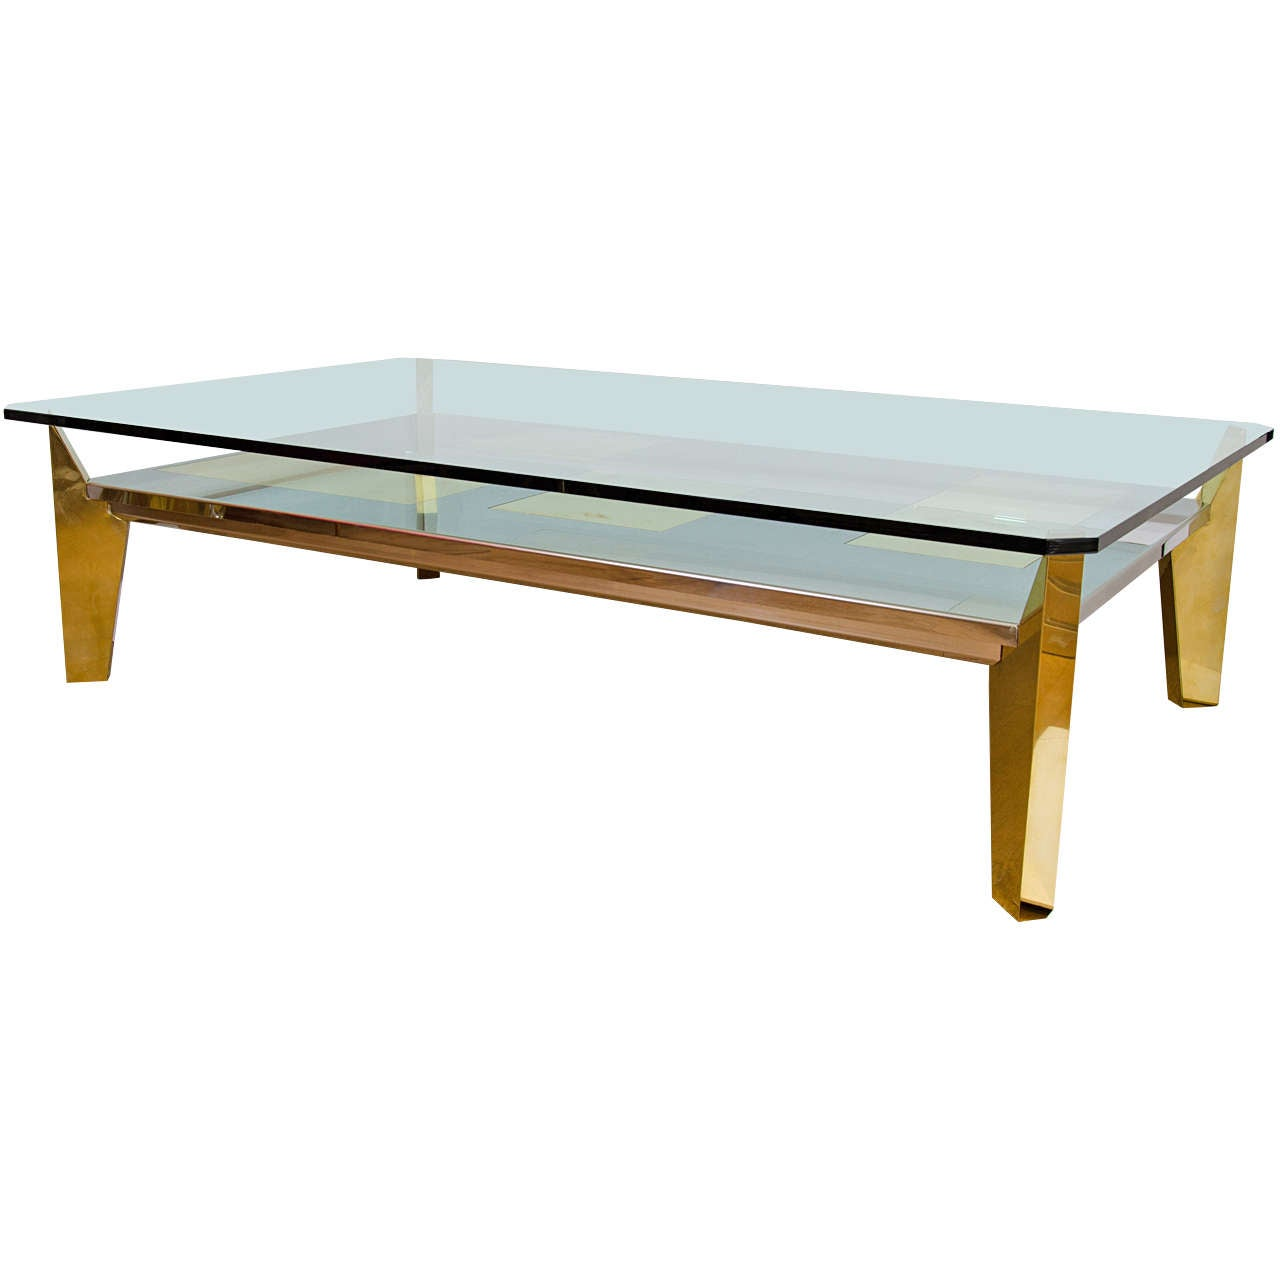 Monumental Stainless Steel And Brass Coffee Table For Sale At 1stdibs